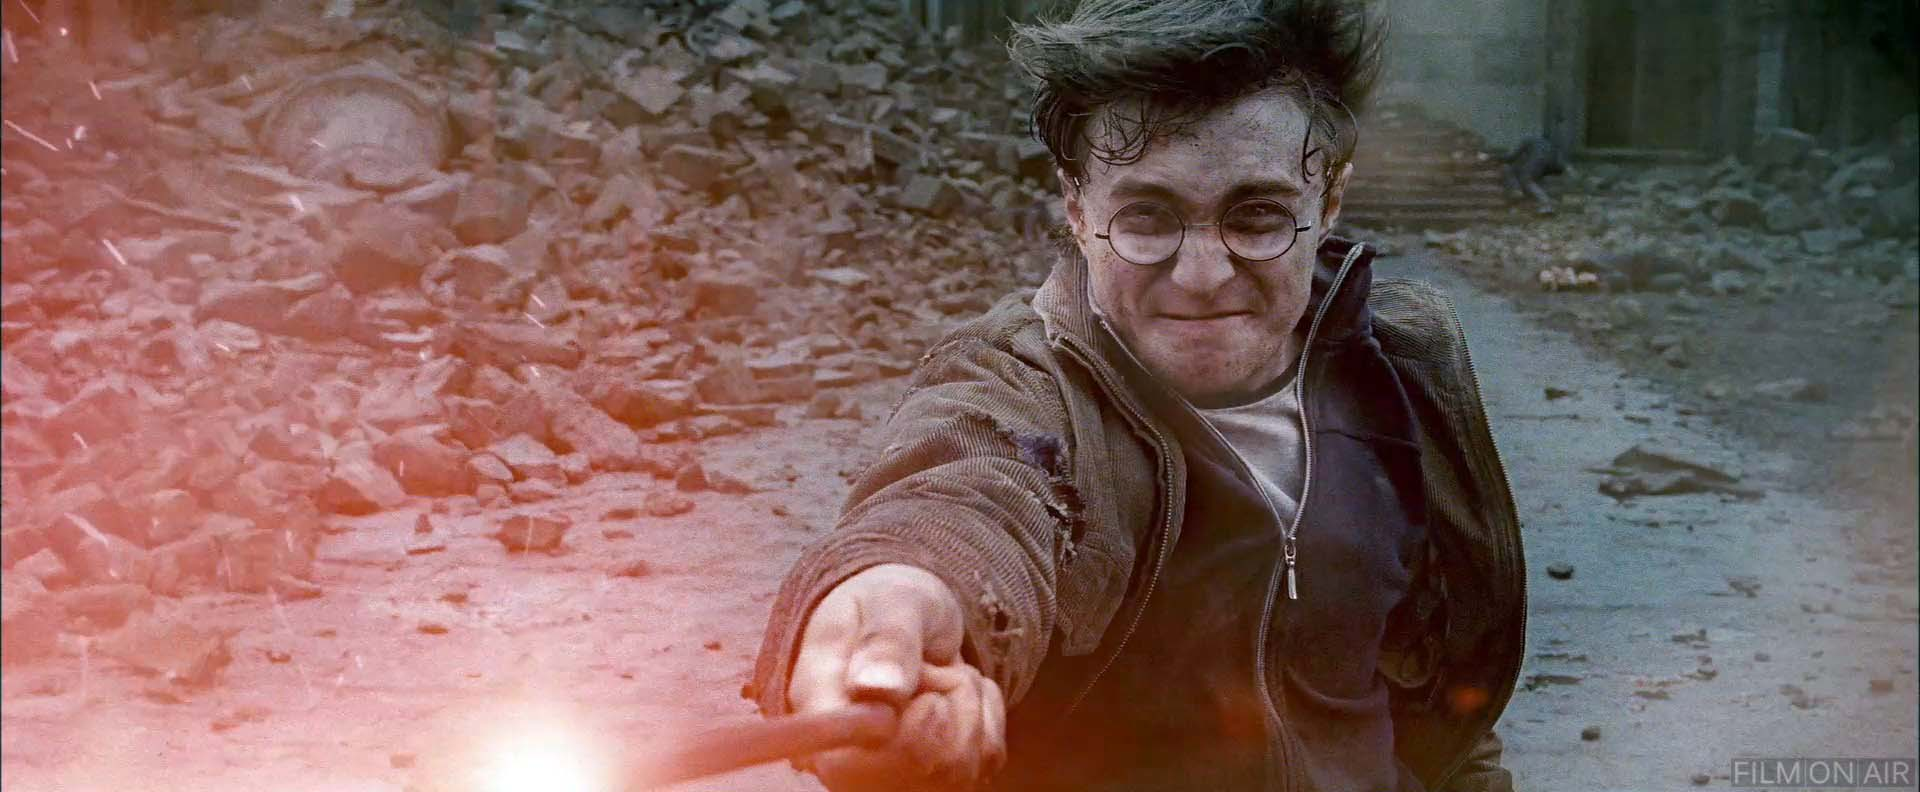 Harry potter wand shot in harry potter and the deathly for Harry potter deathly hallows wand